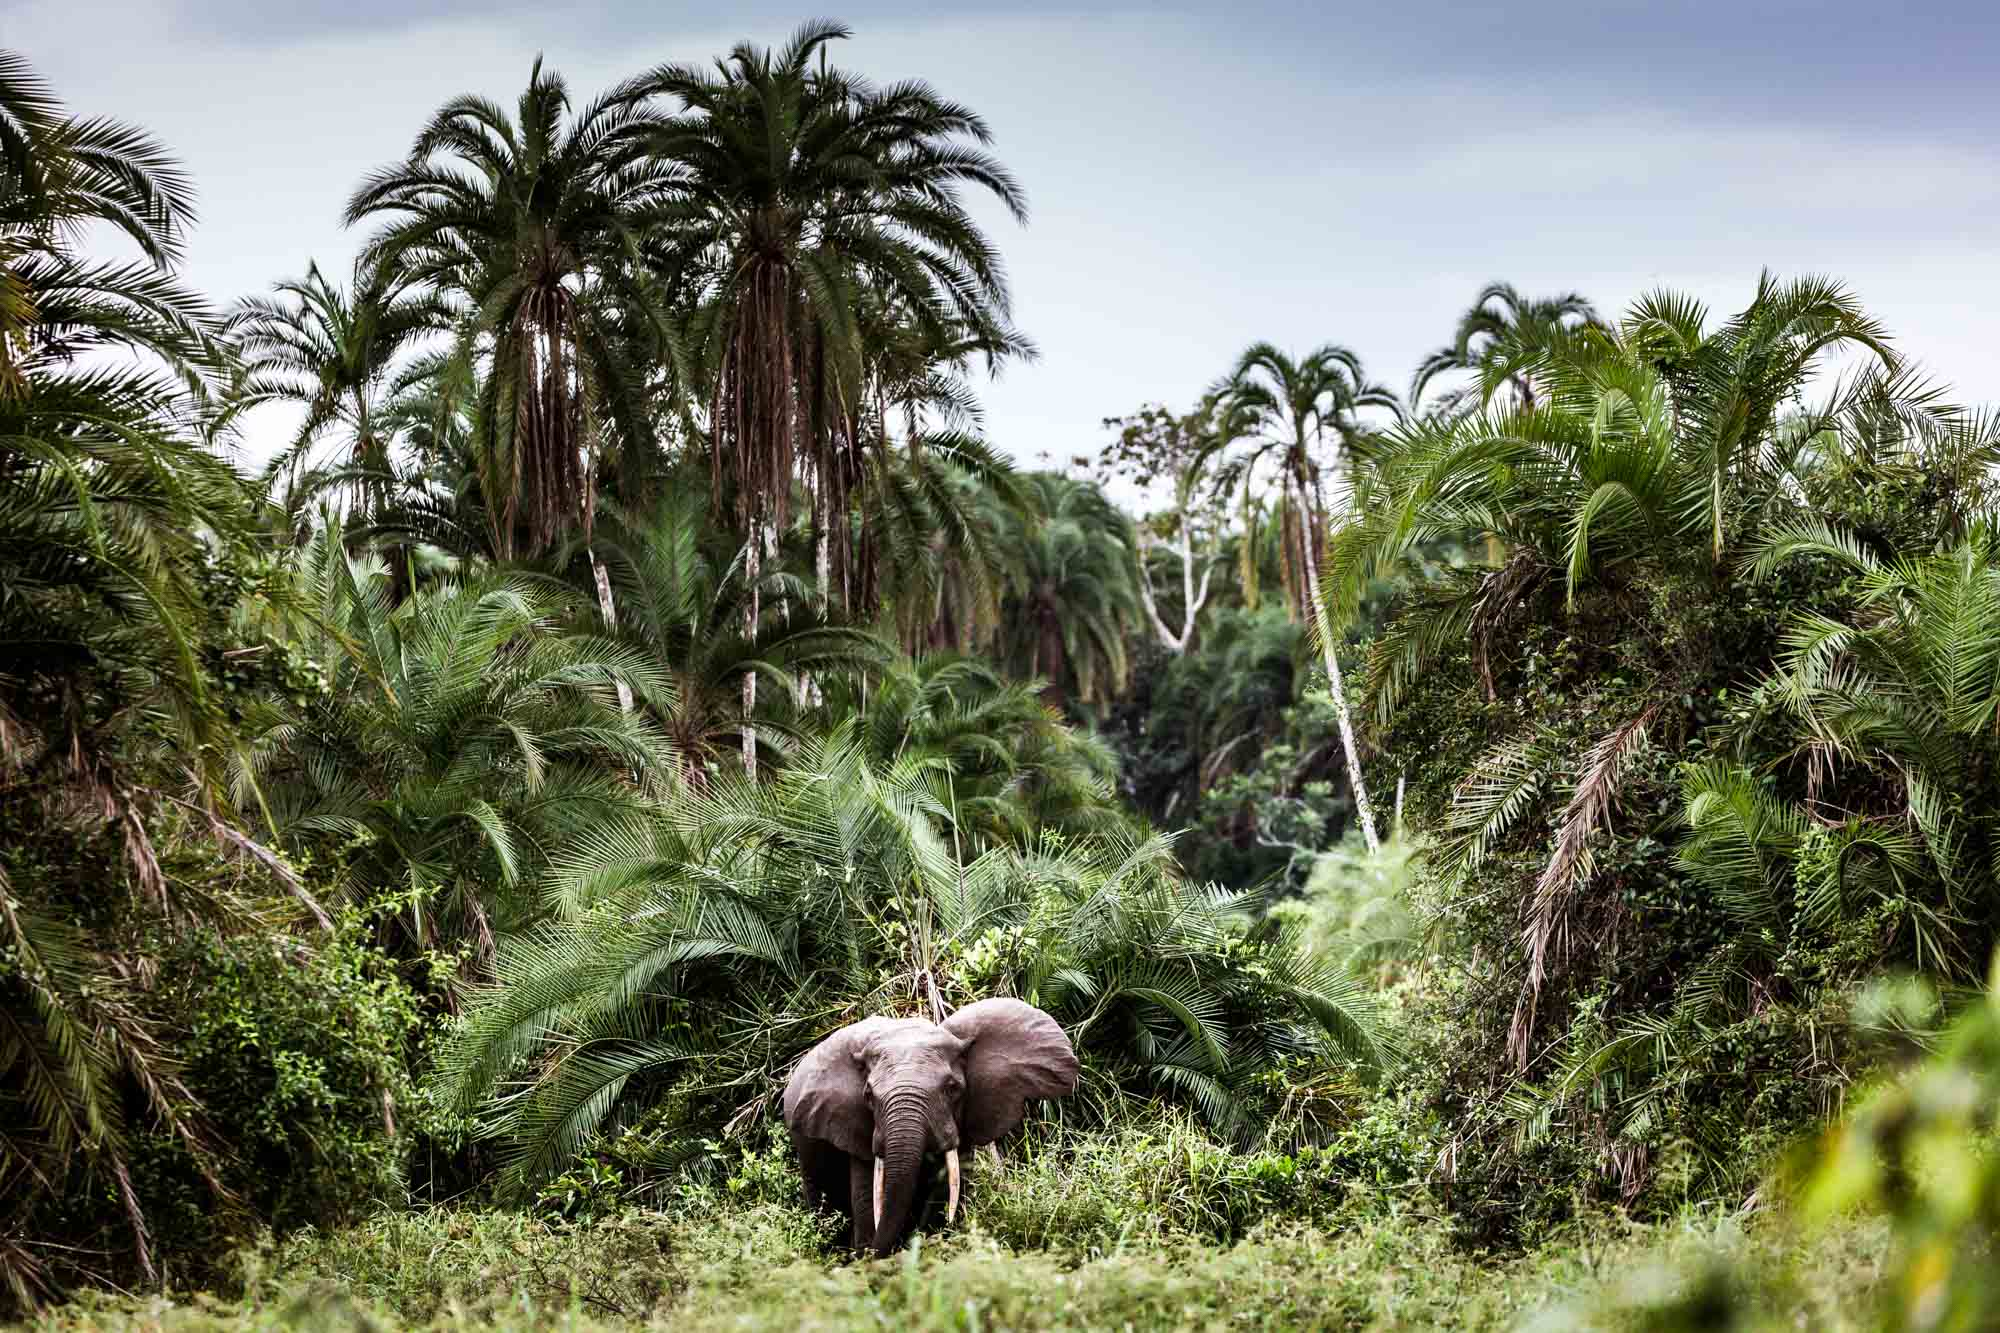 A forest elephant browsing in Odzala-Kokoua National Park in Republic of Congo